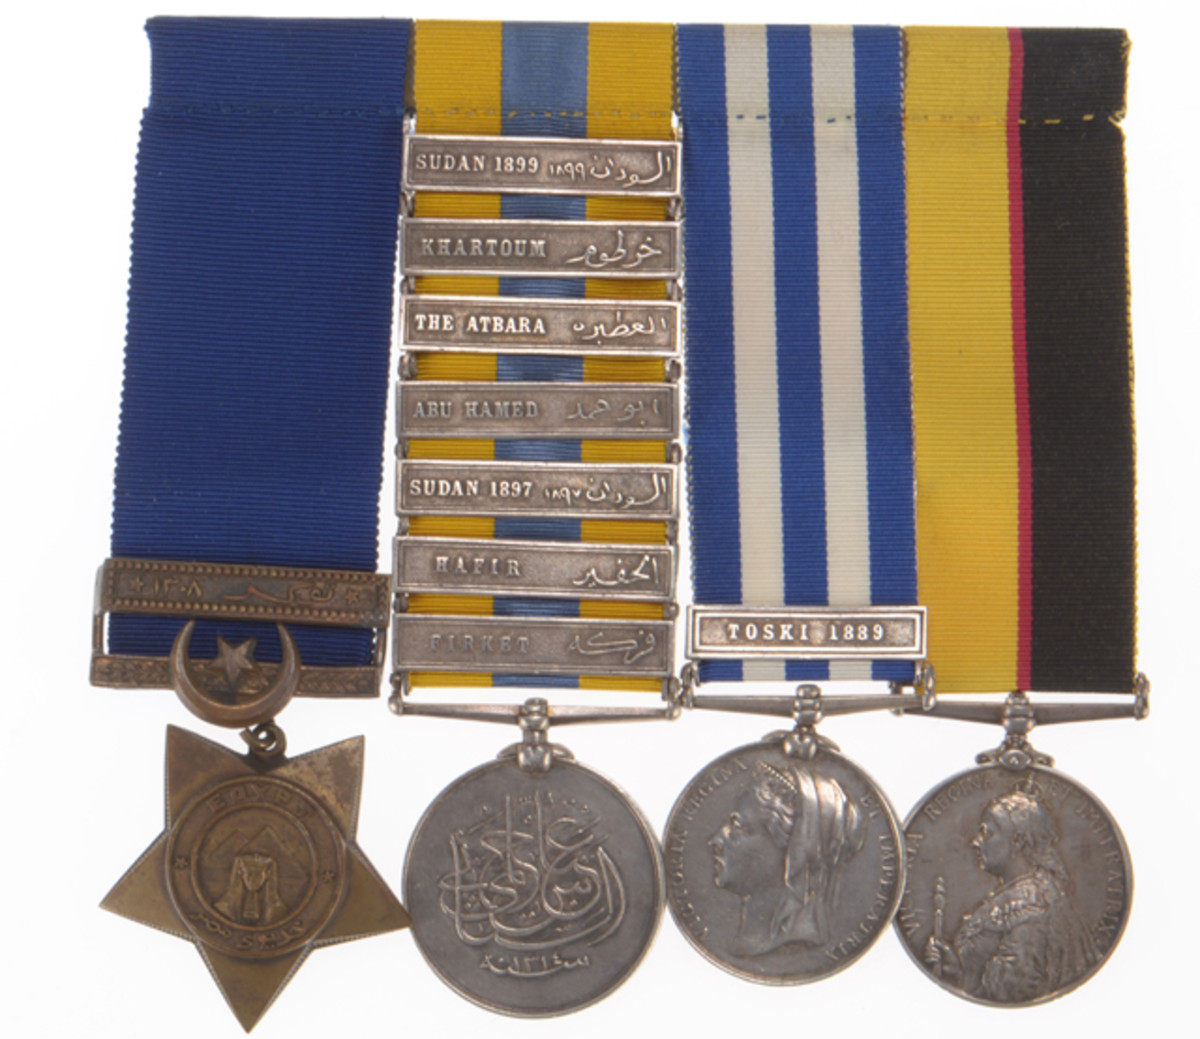 British medal collecting has been popular for about 150 years but has really only caught on in the United States in the last half century. Groups of medals attributed to a single recipient command premium prices both here and across the ocean.